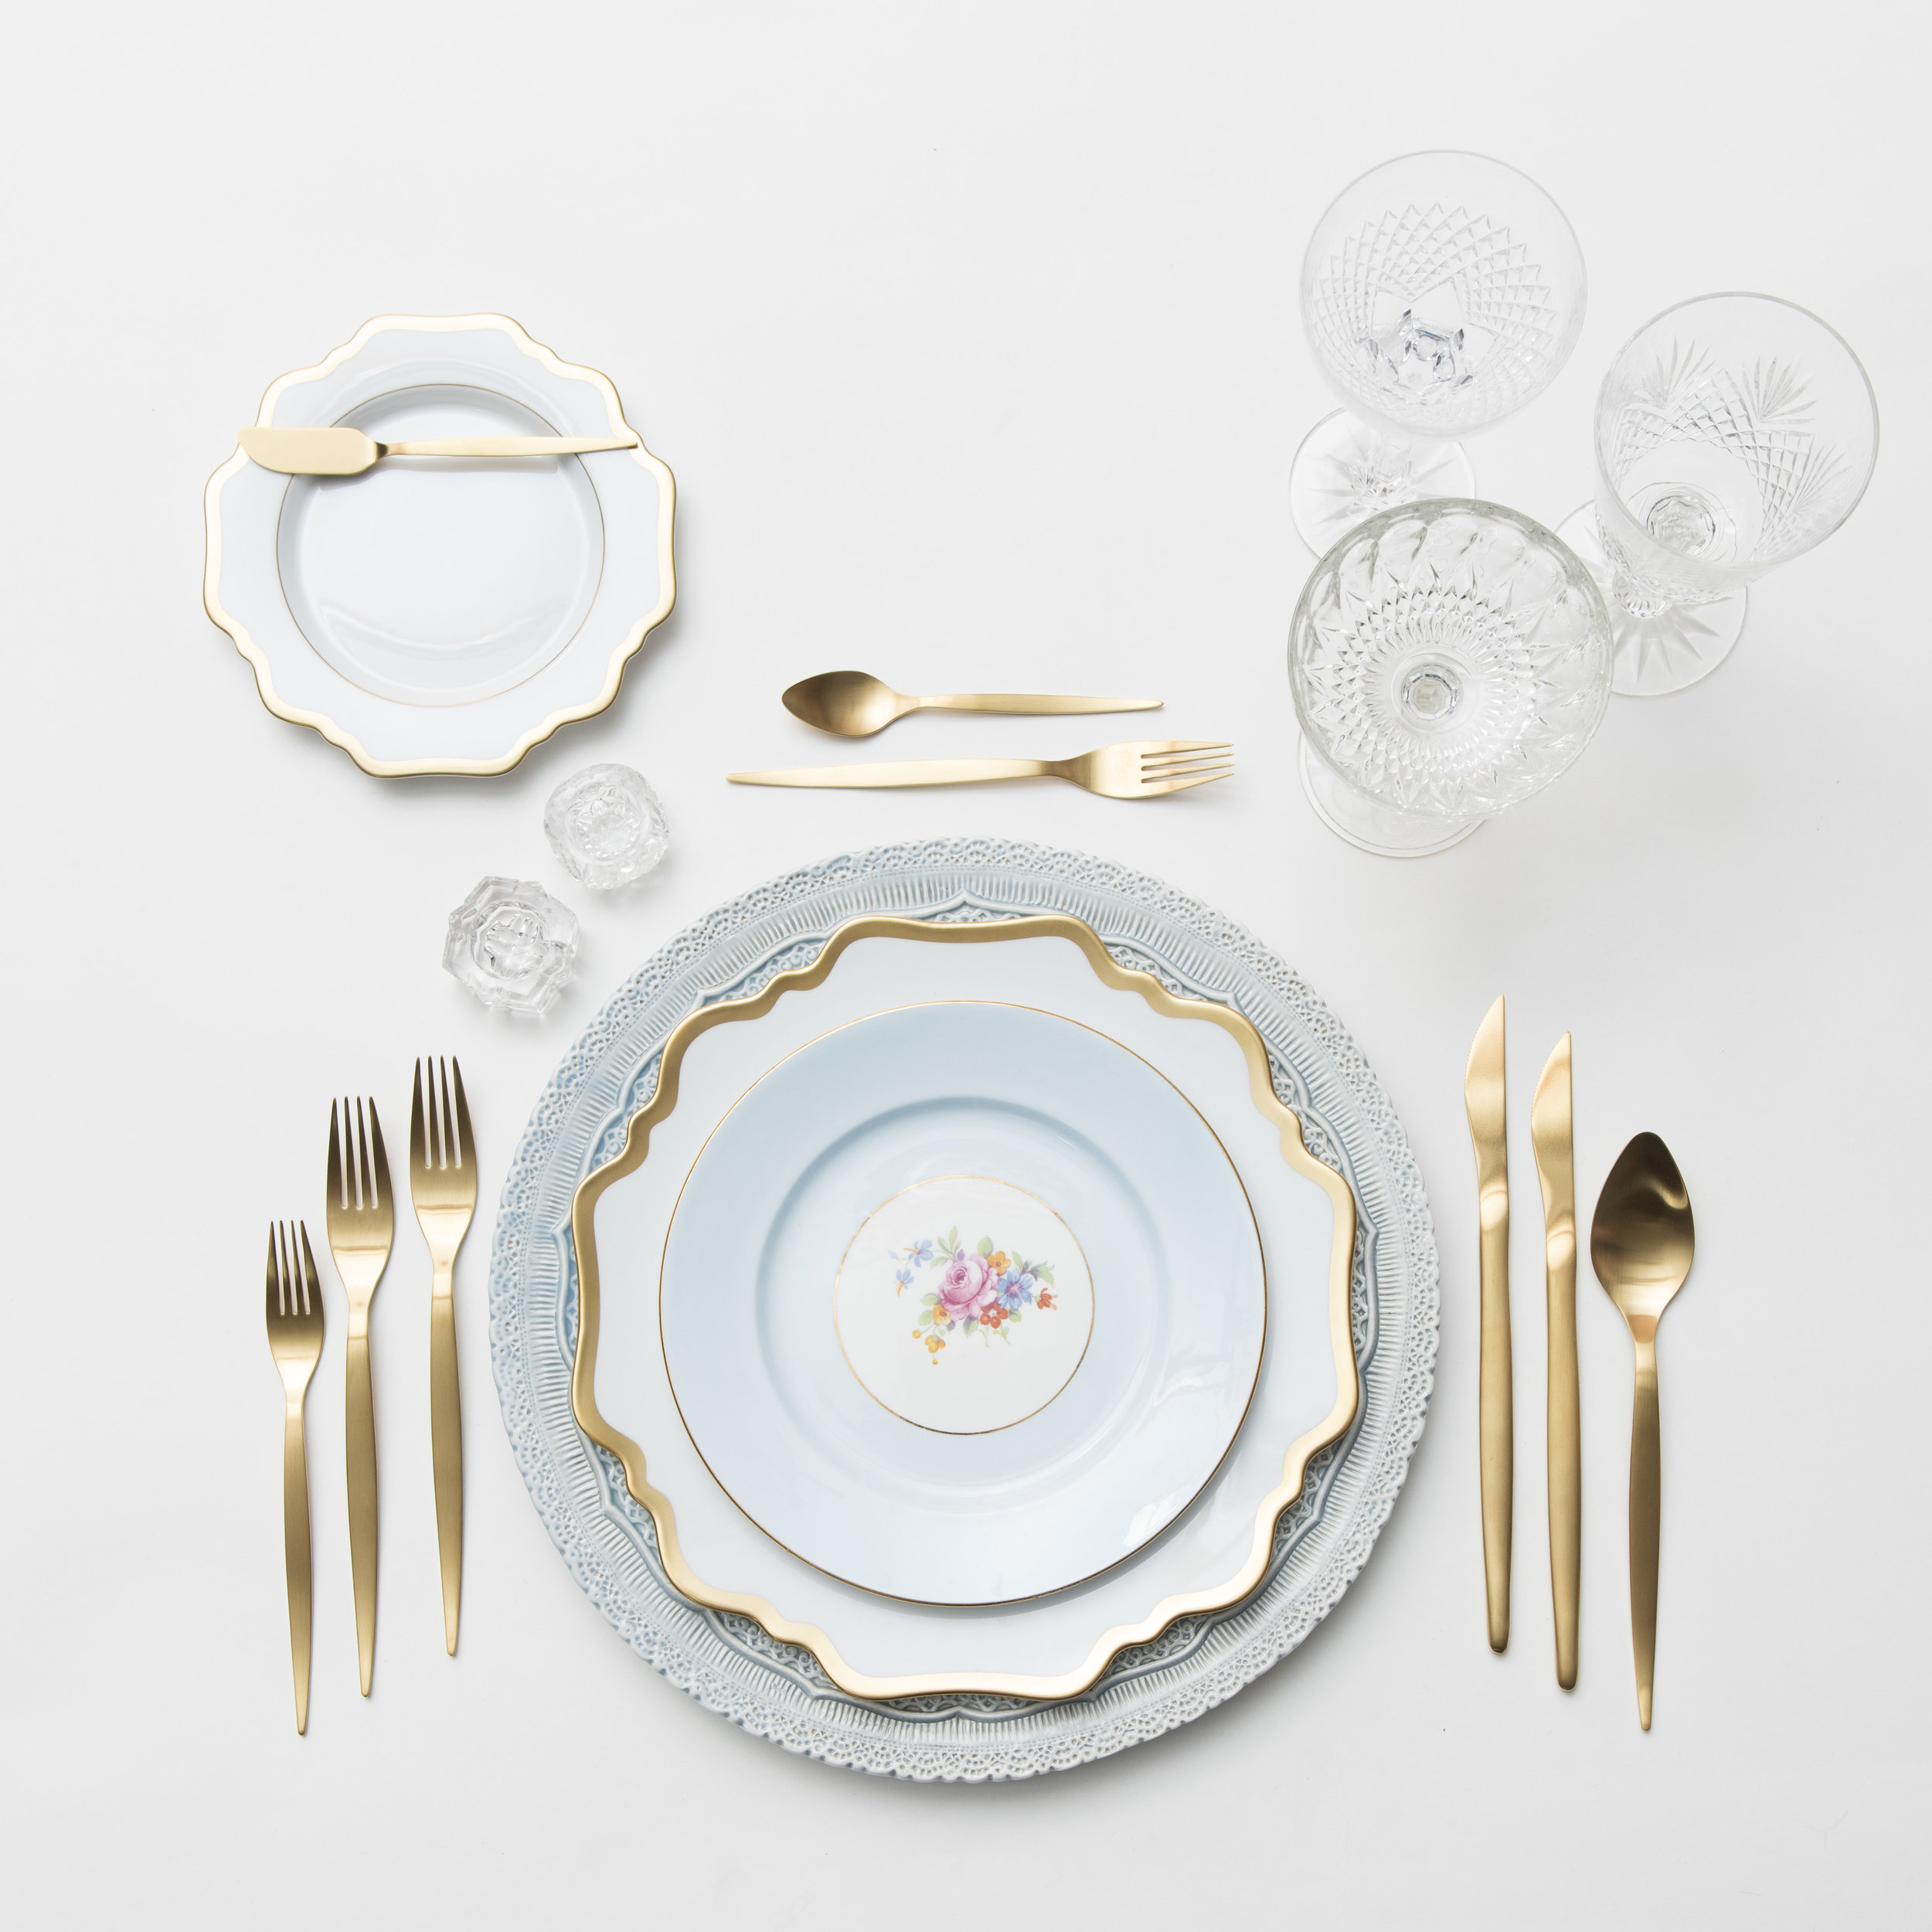 RENT: Lace Chargers in Dusty Blue + Anna Weatherley Dinnerware in White/Gold + Blue Botanicals Vintage China + Celeste Flatware in Matte Gold + Vintage Cut Crystal Goblets +Vintage Champagne Coupes + Antique Crystal Salt Cellars  SHOP:Anna Weatherley Dinnerware in White/Gold